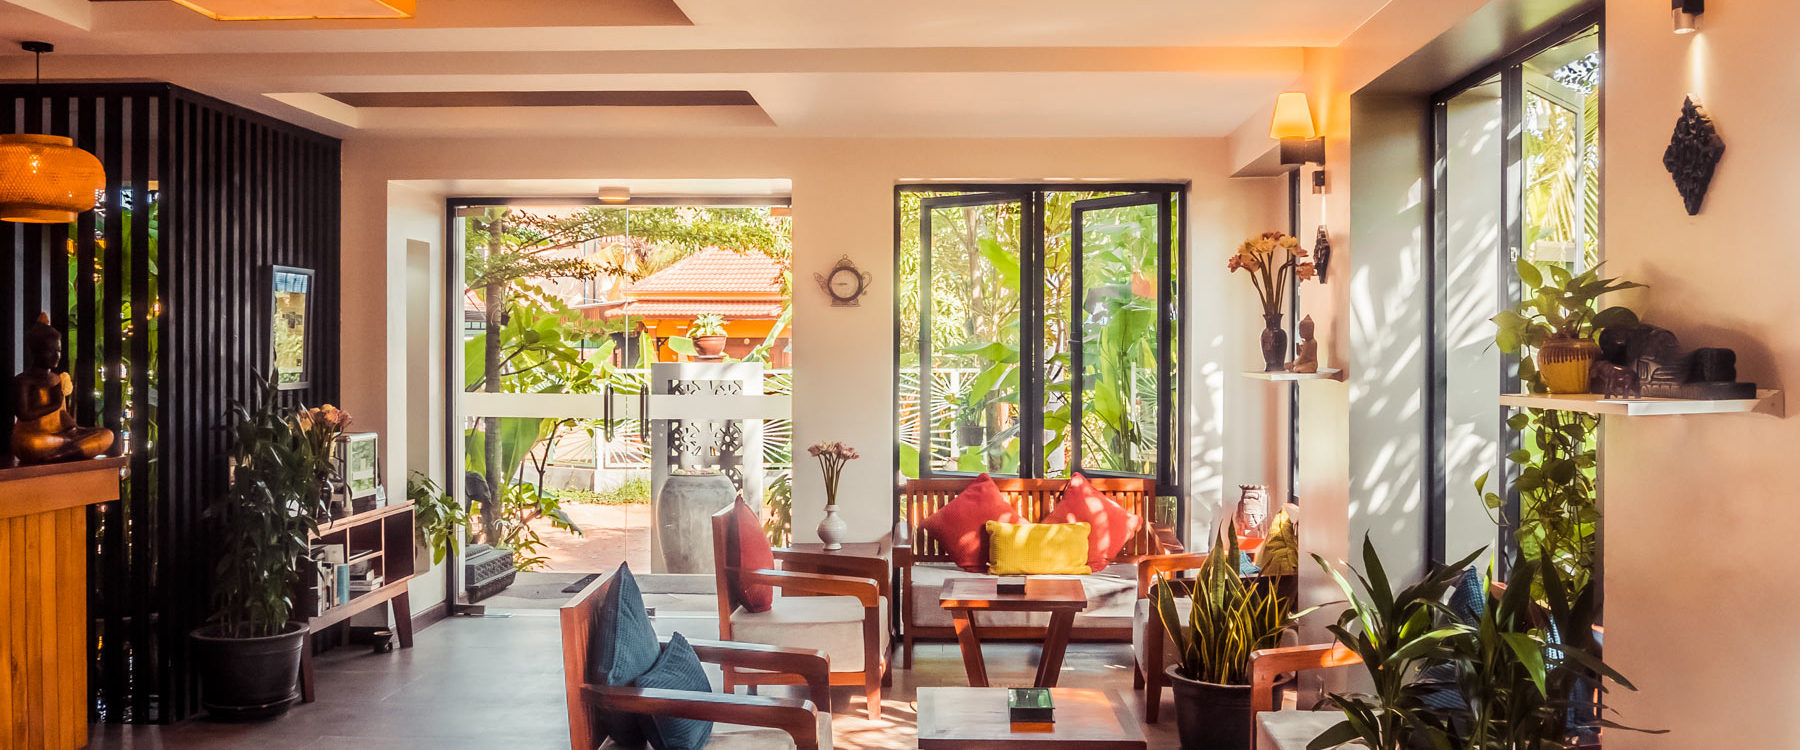 Bright lobby area fully furnished for the guests arrival and welcoming in a high standing hotel - luxury Advaya Residence in Siem Reap, Cambodia.